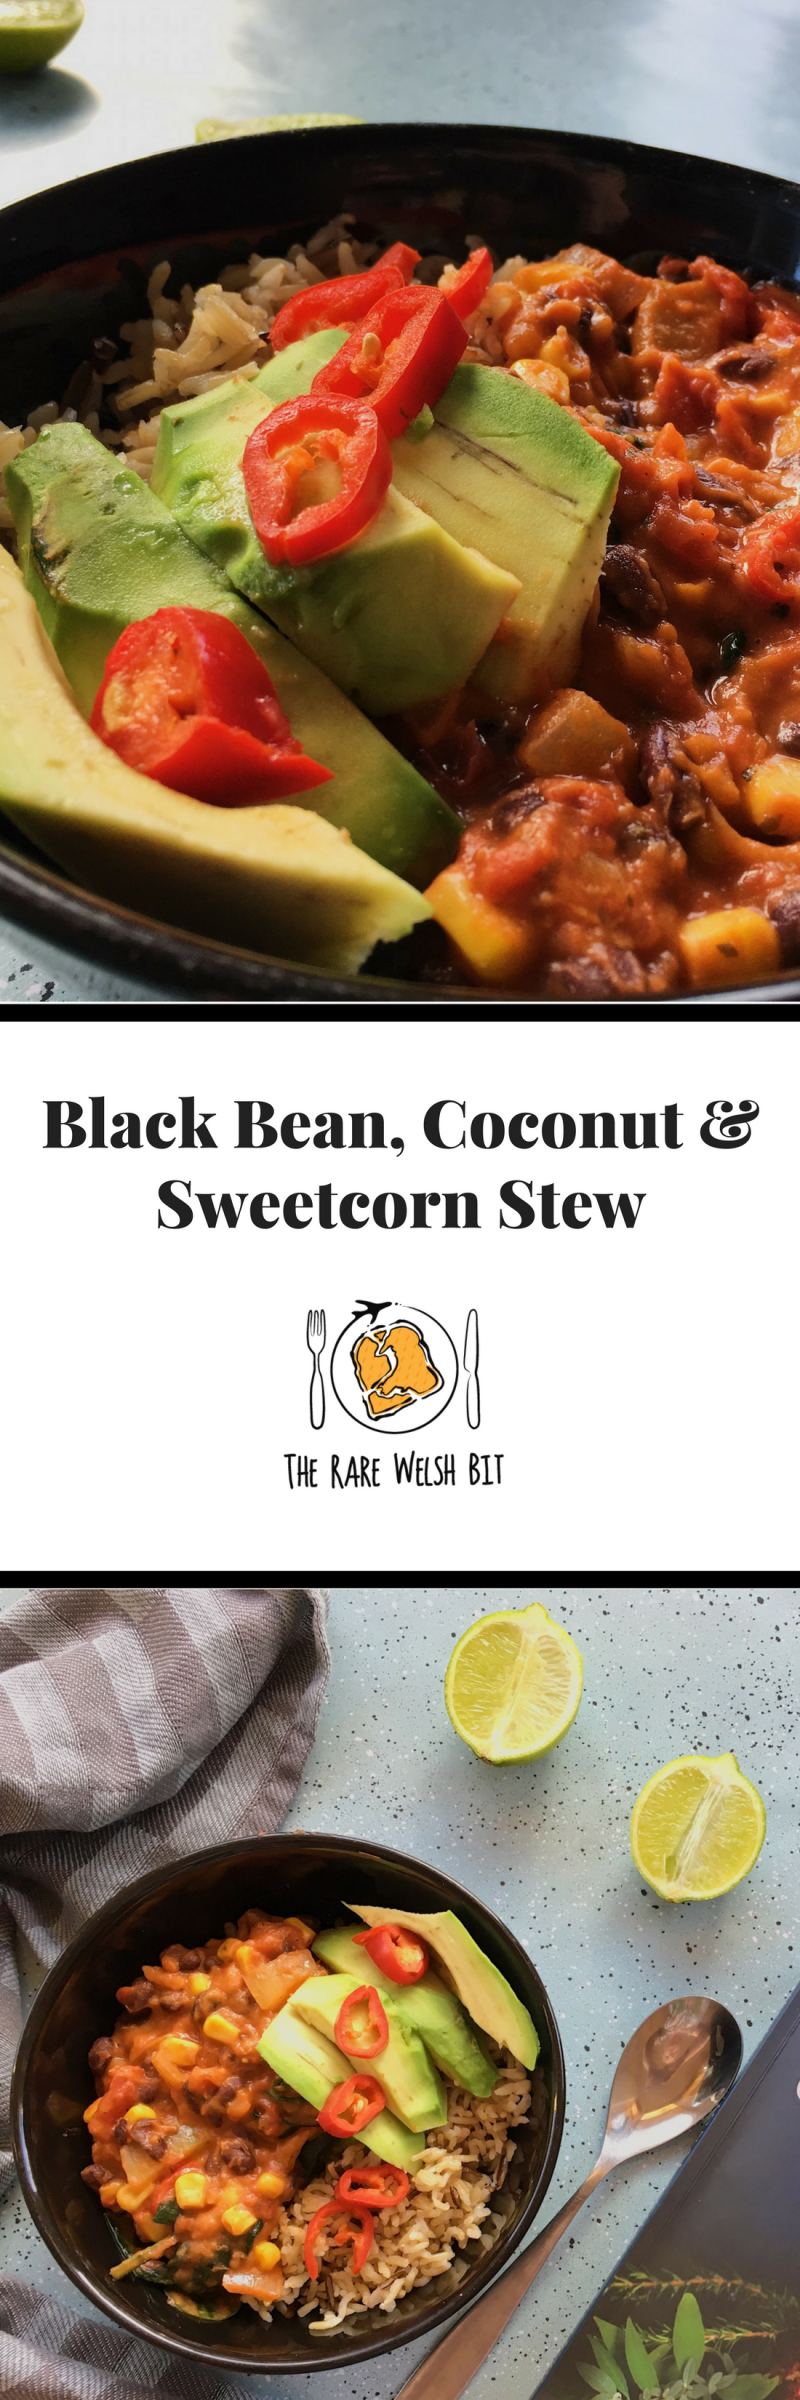 Black Bean, Coconut and Sweetcorn Stew